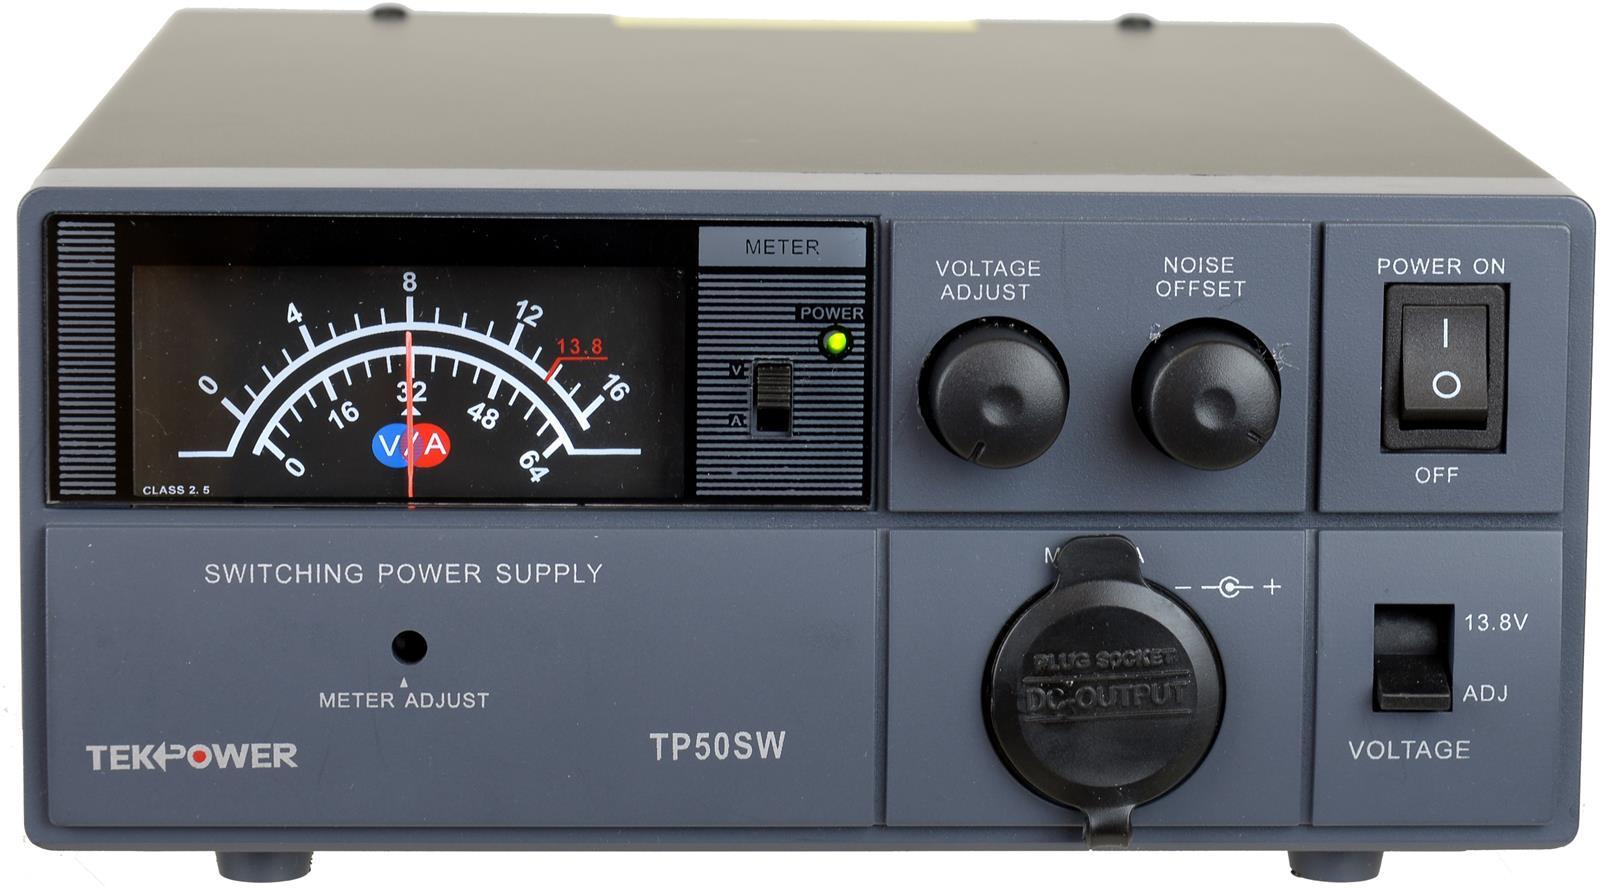 TekPower TP50SW 50 Amp 13.8V Analog DC Power Supply with Cigarette Plug by TekPower